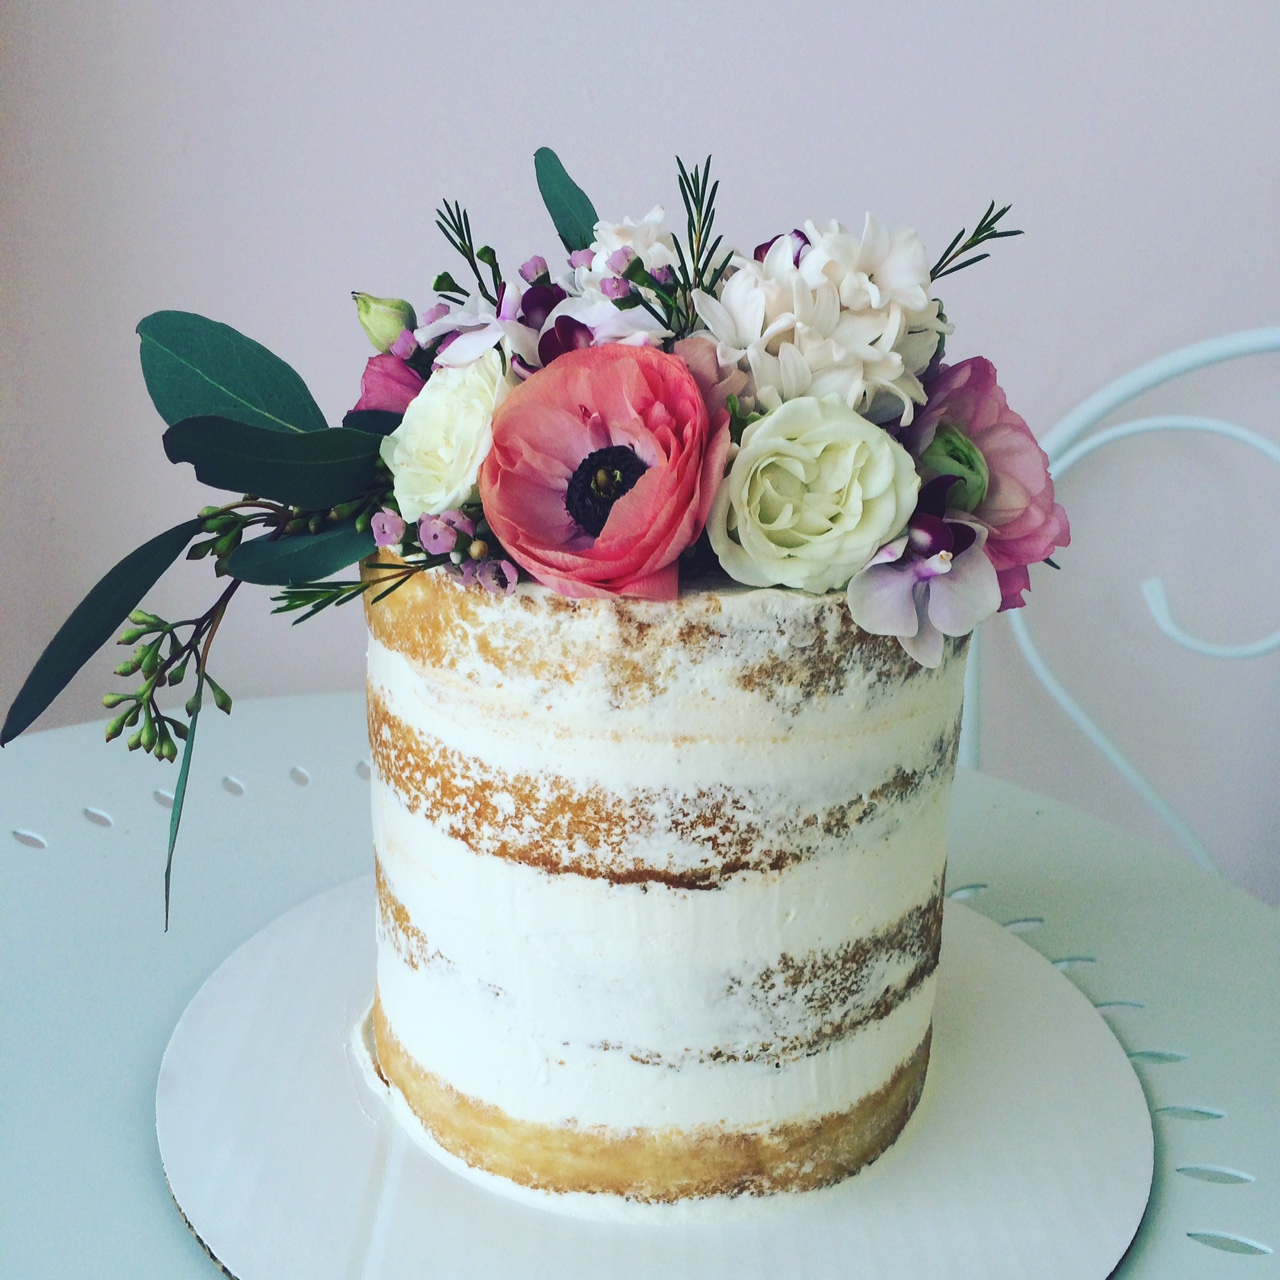 Baby Shower cake with florals.JPG